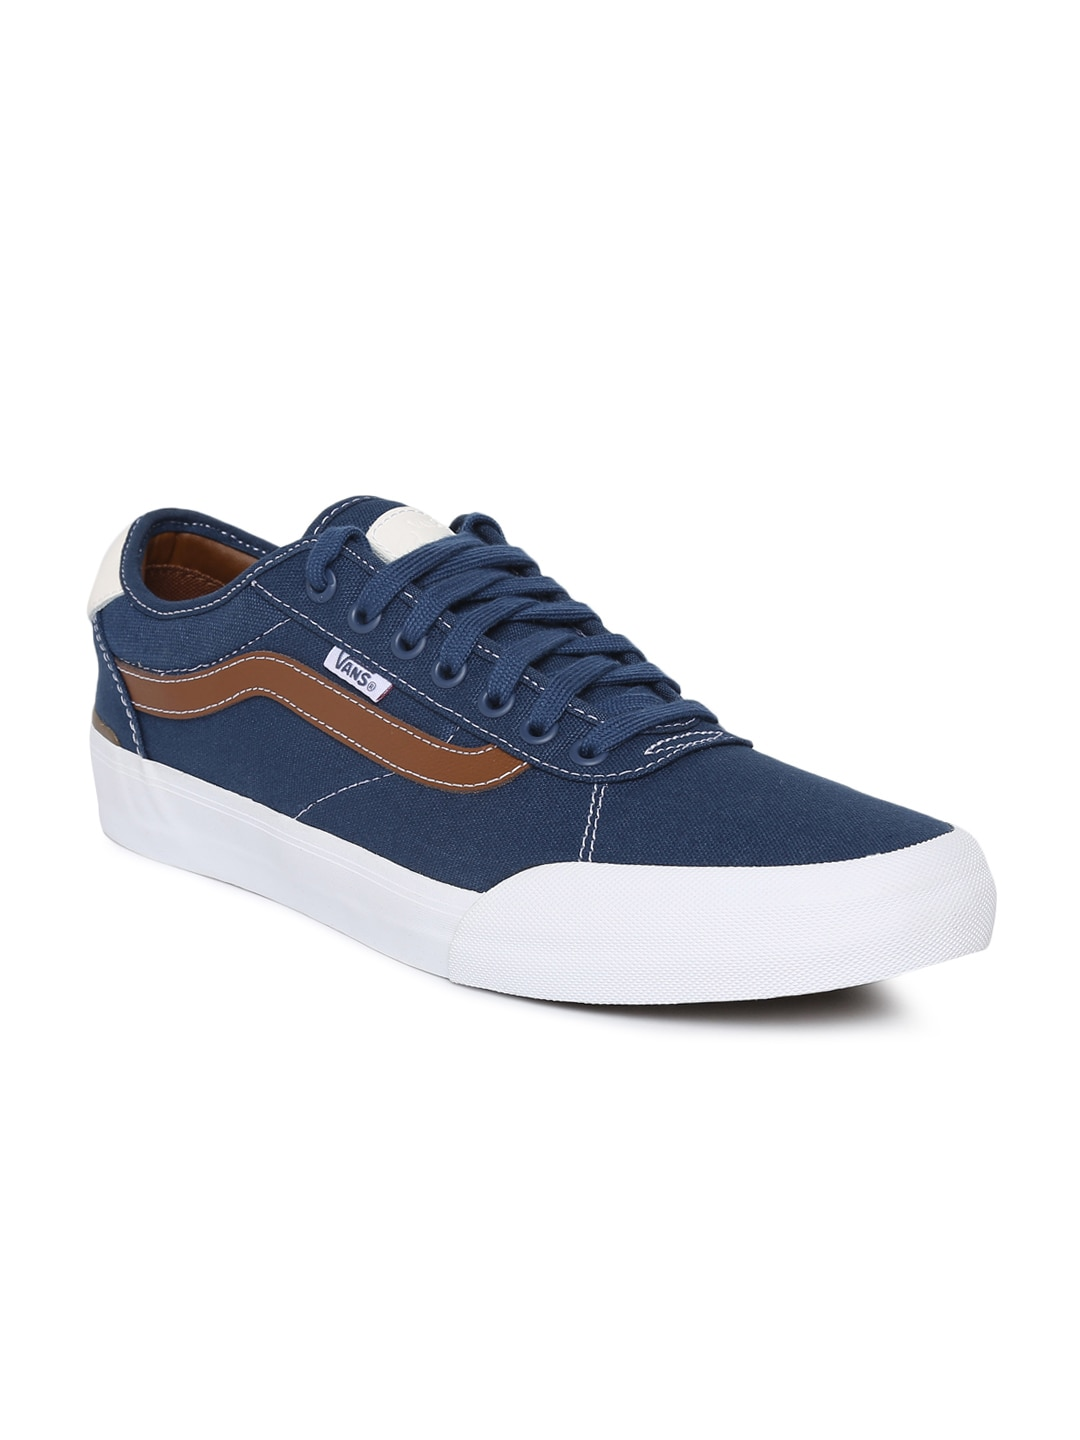 4d94ab9032 Vans Shoes - Buy Vans Shoes Online in India